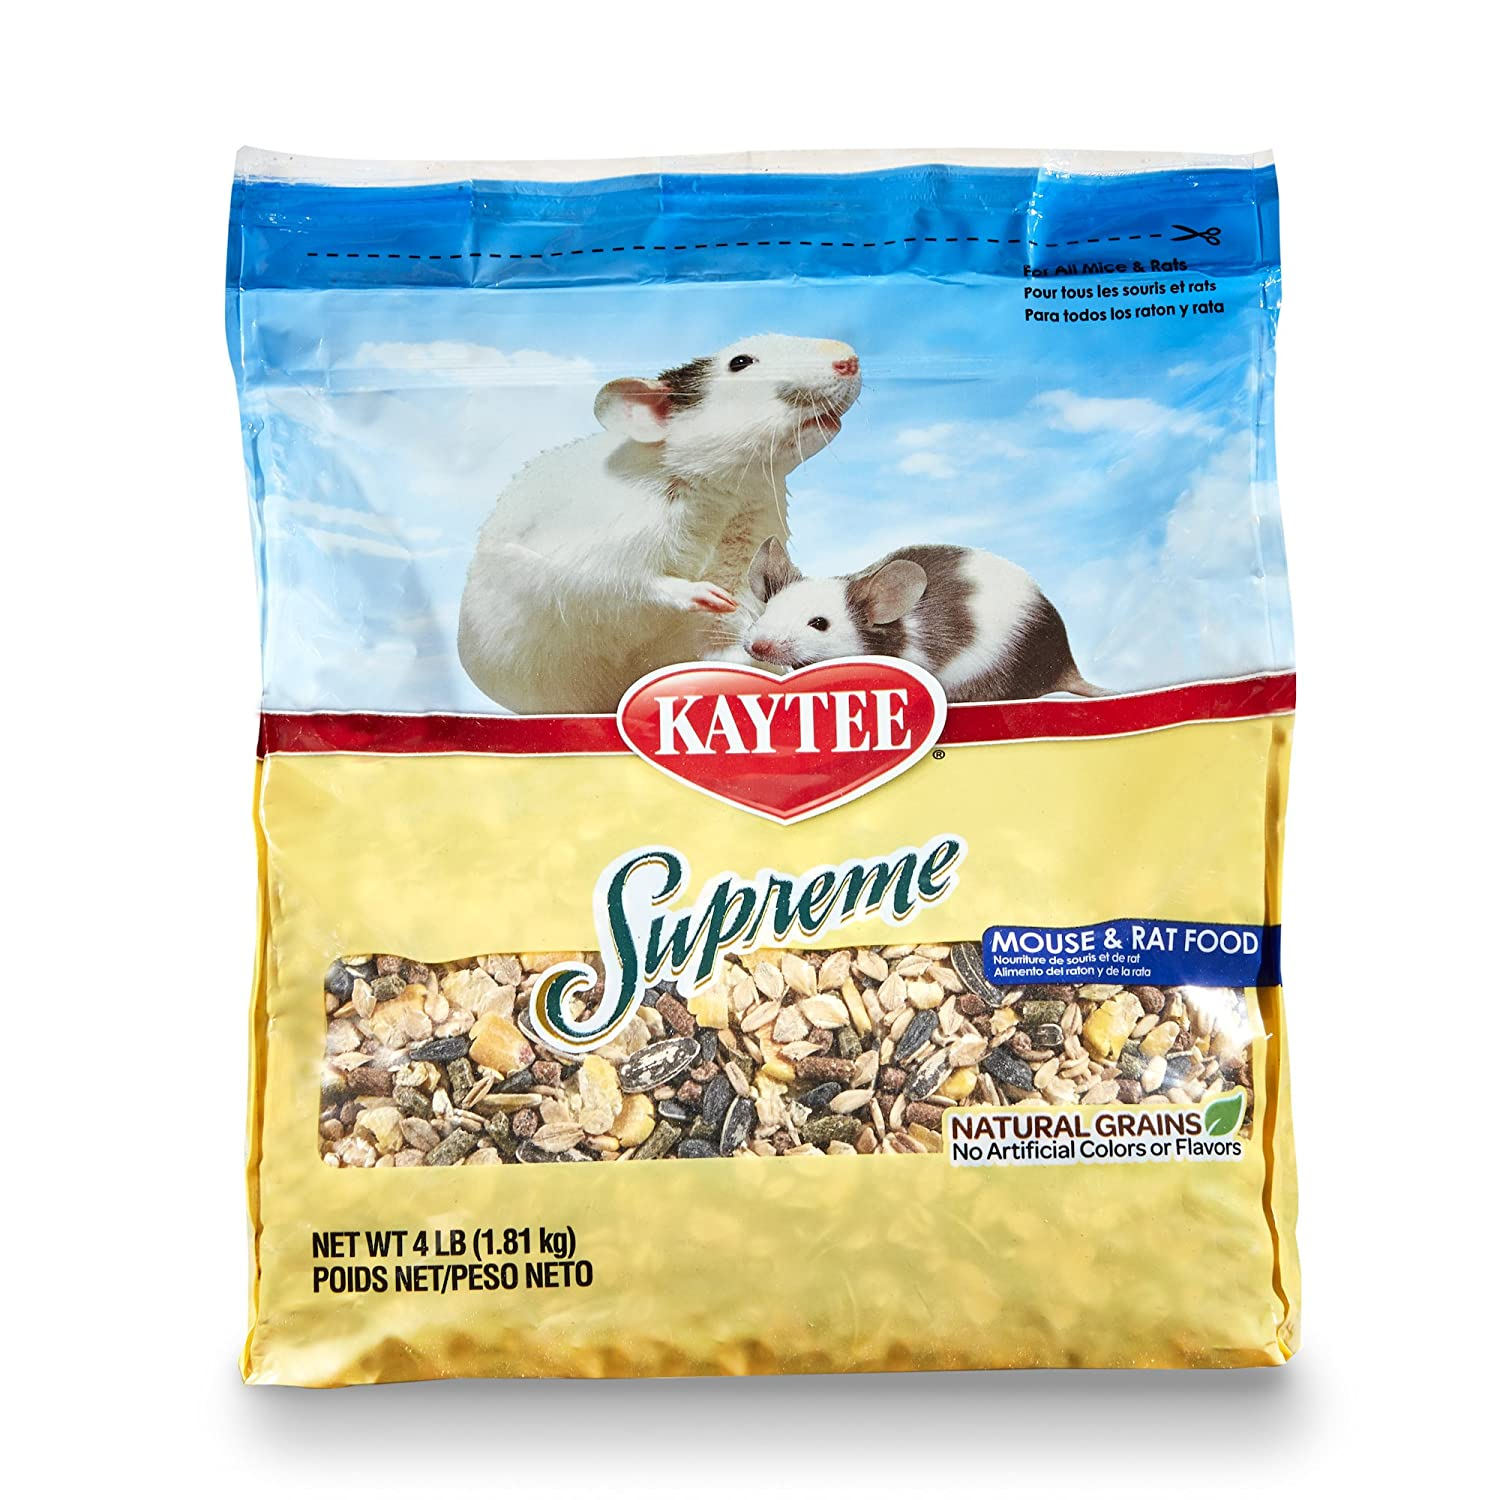 Kaytee Supreme Mouse and Rat Food